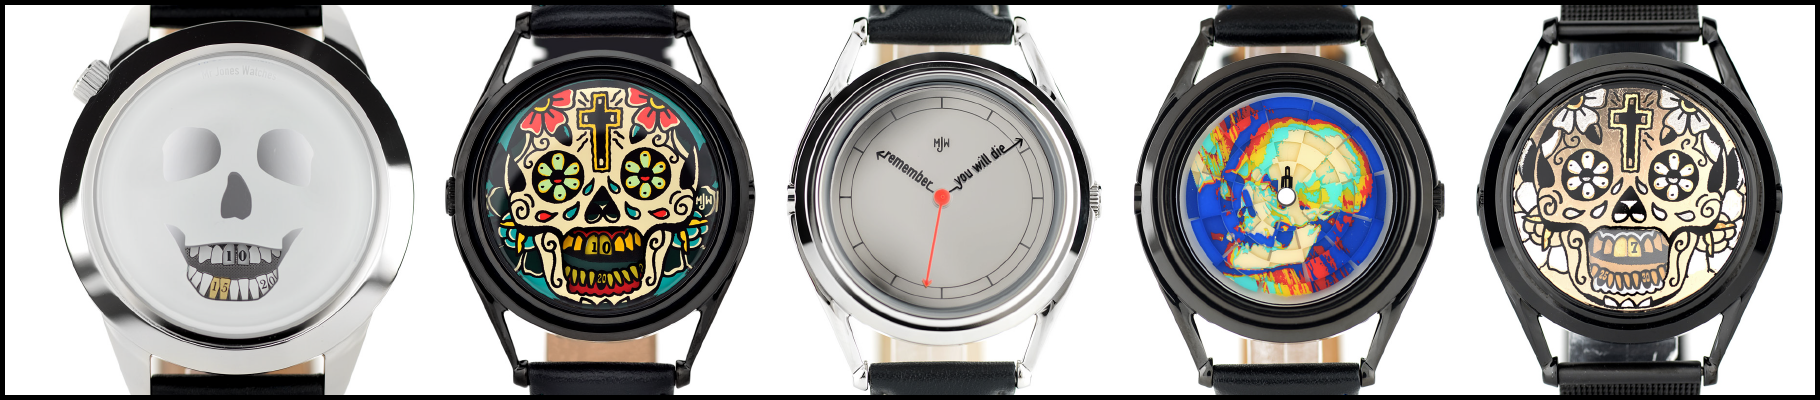 memento mori watches